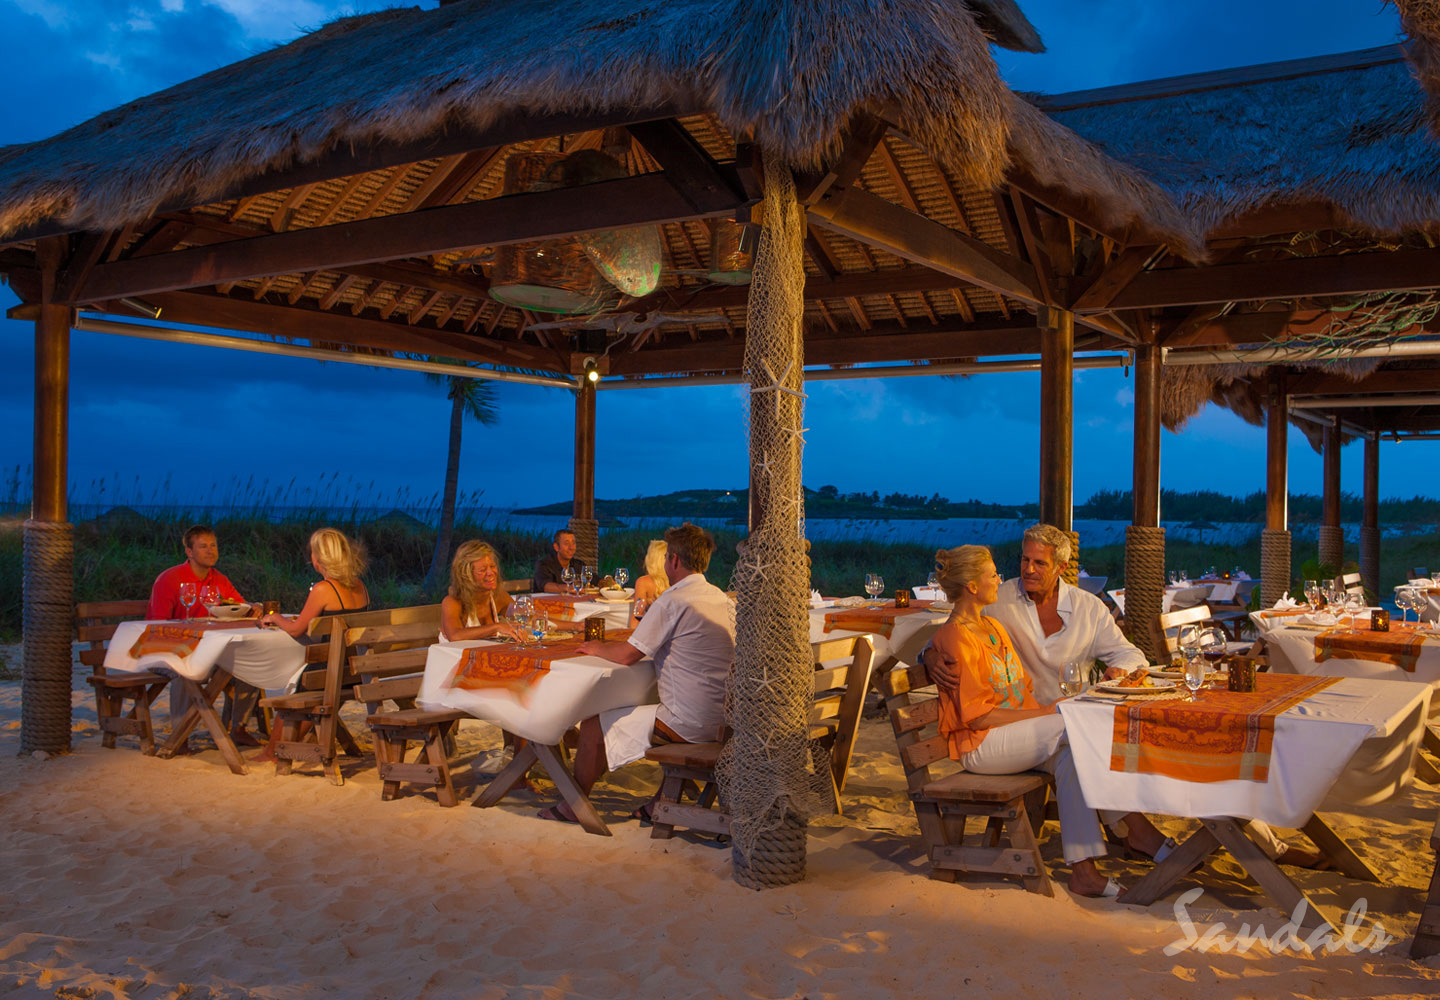 Travel Agency All-Inclusive Resort Sandals Emerald Bay 087